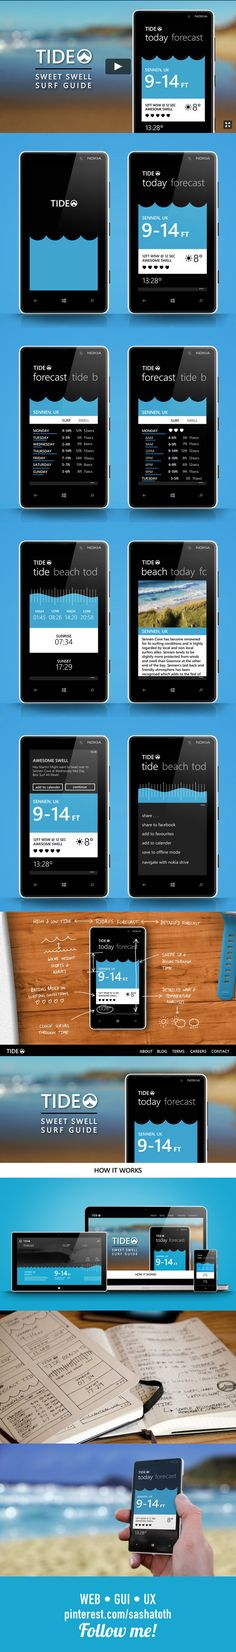 """Tide ••• """"TIDE - SWEET SWELL SURF GUIDE - Currently in the development process, Tide is a Surfing forecast app, which is more natural way of processing wave and tide data. Rather than trawling through tables and bar charts, tide creates a more gestural way of exploring the waves through time whilst allowing fast access to the data that most is important to surfers.""""by Martin Spurway, via Behance • #wp #windowsphone #app #flat"""